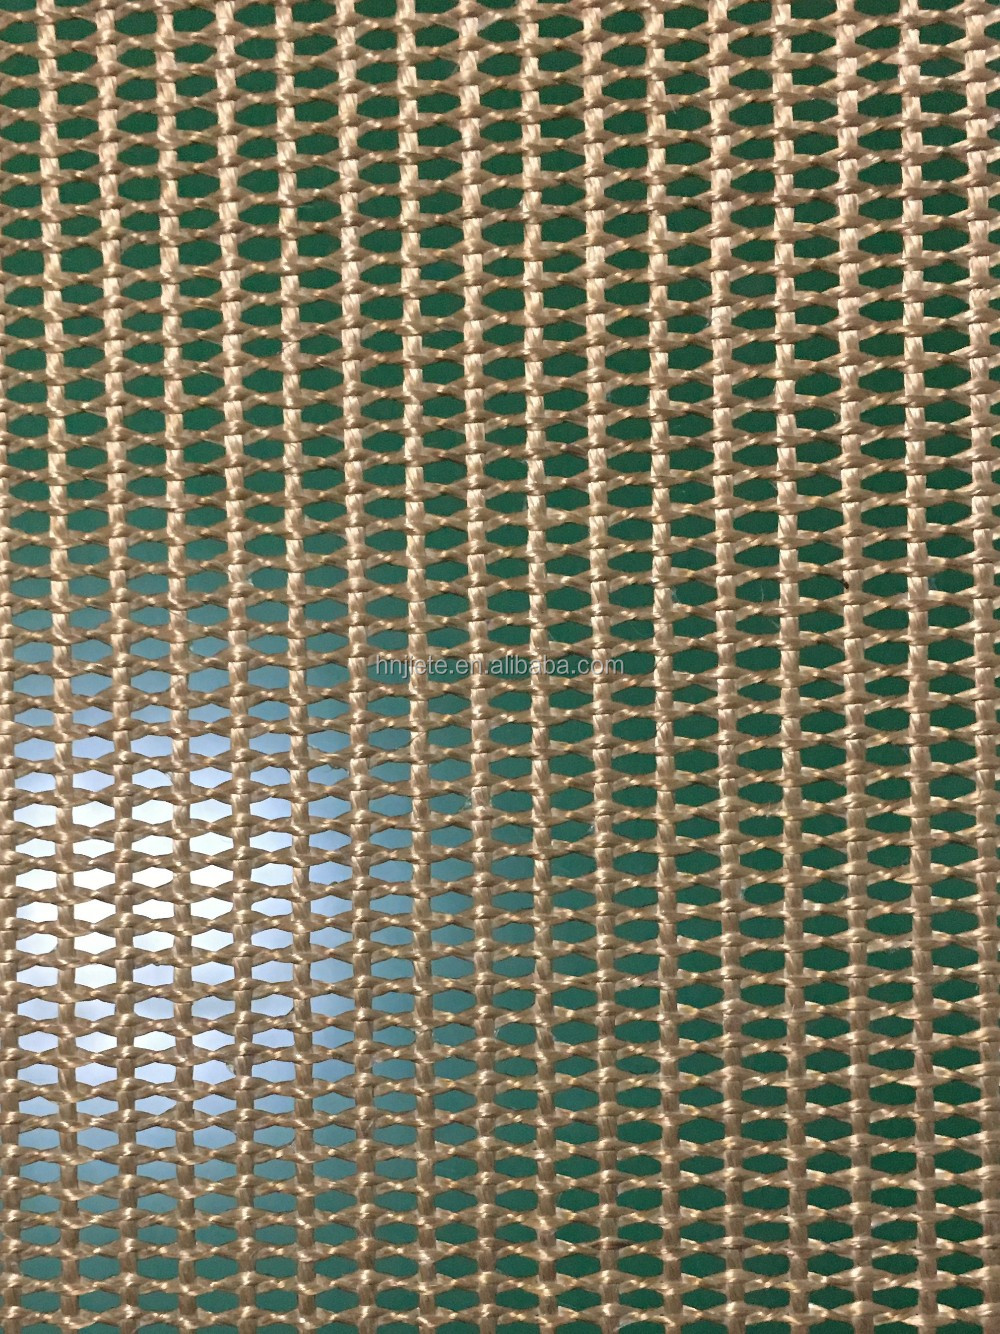 fiberglass mesh for PTFE coating